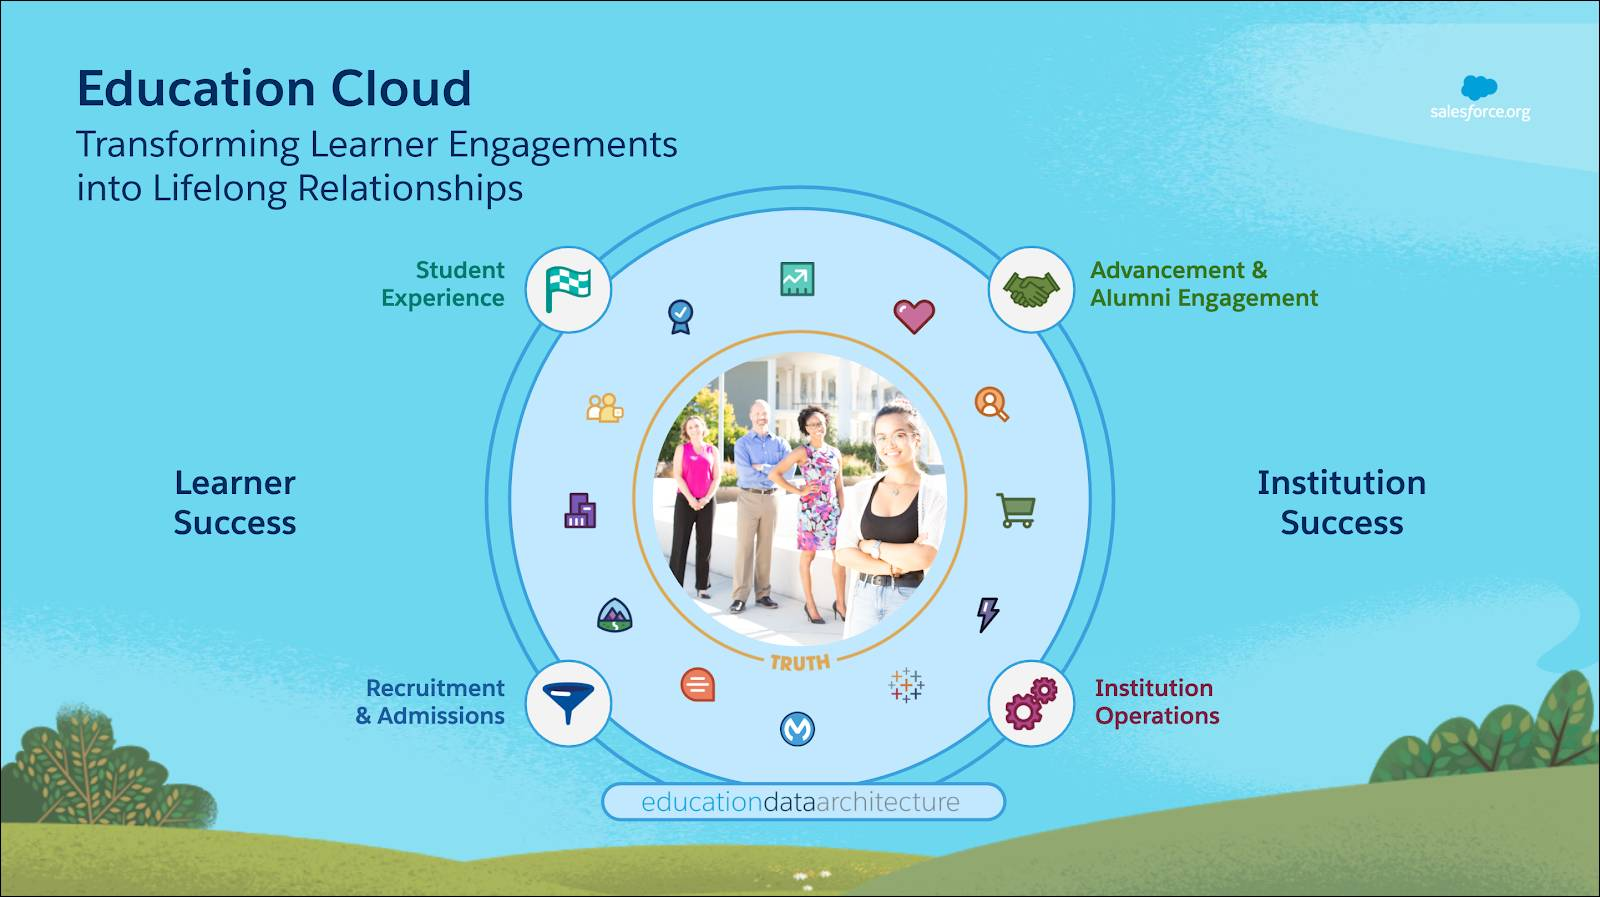 Education Cloud is transforming learner engagement into lifelong relationships. Education Data Architecture supports learner success and institution success with solutions for recruitment and admissions, student experience, advancement and alumni engagement and institution operations.